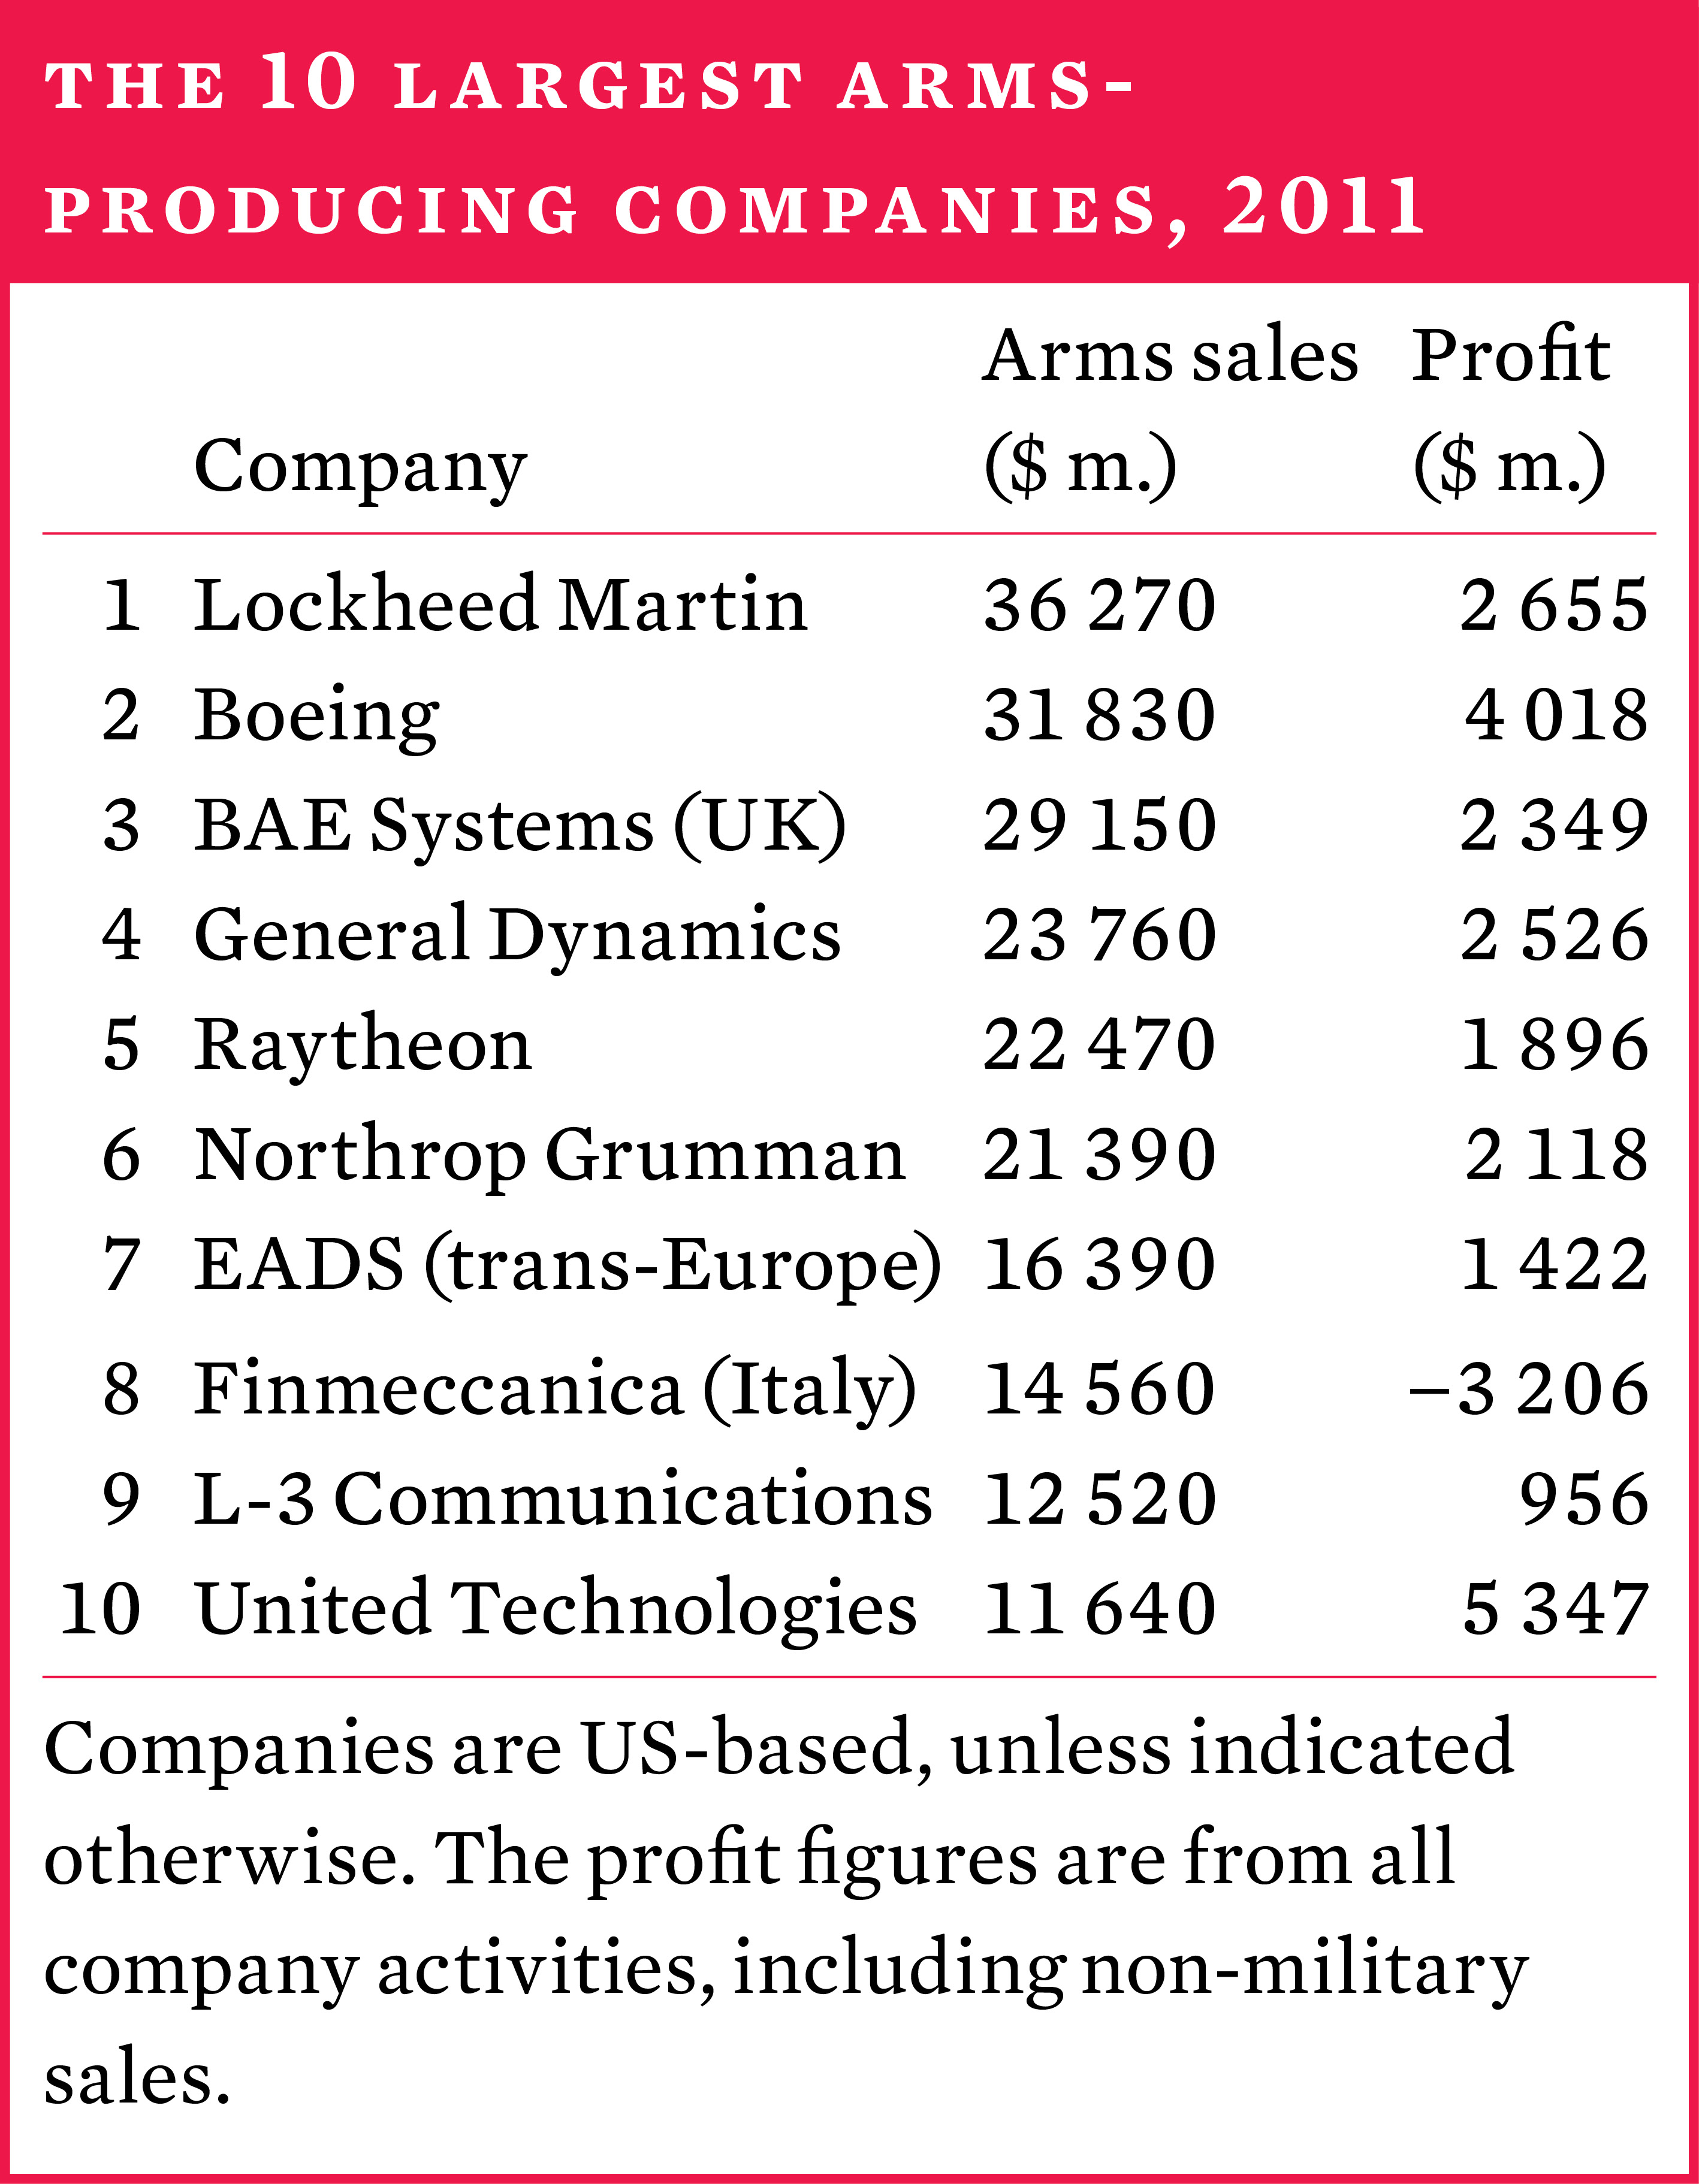 The 10 largest arms-producing companies, 2011